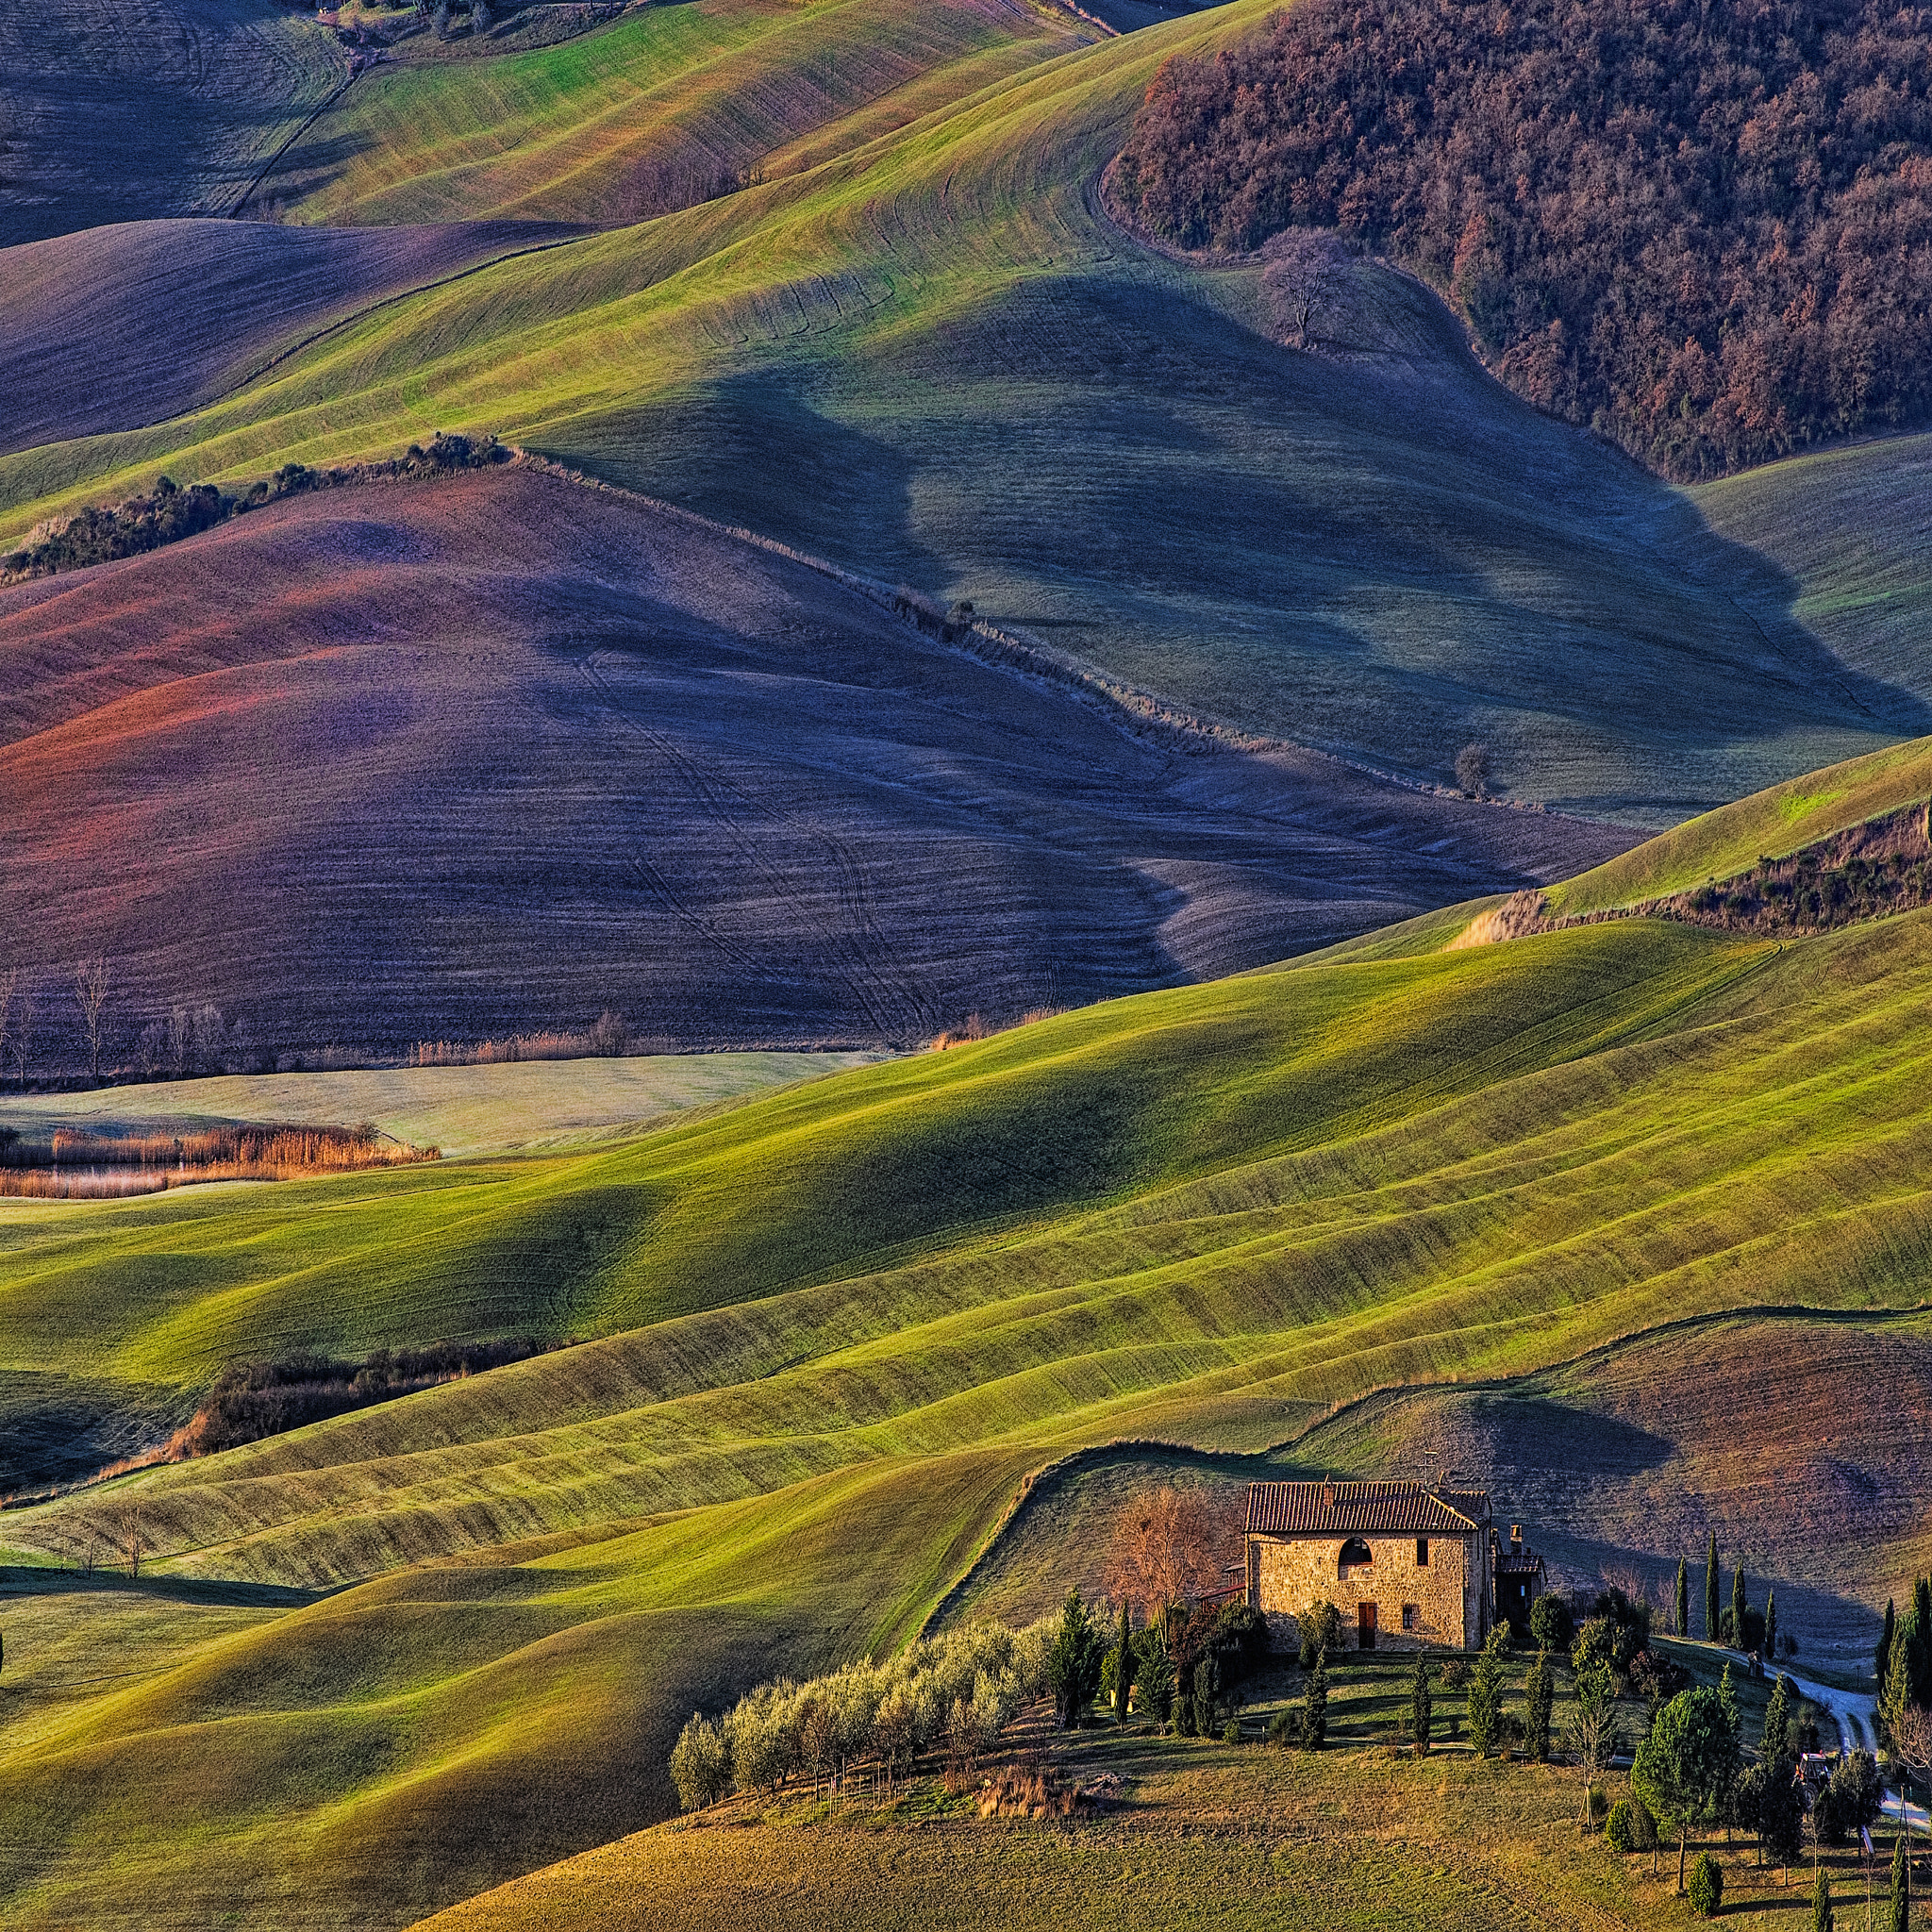 Photograph Tuscany - Crete Senesi #5 by Massimo Squillace on 500px